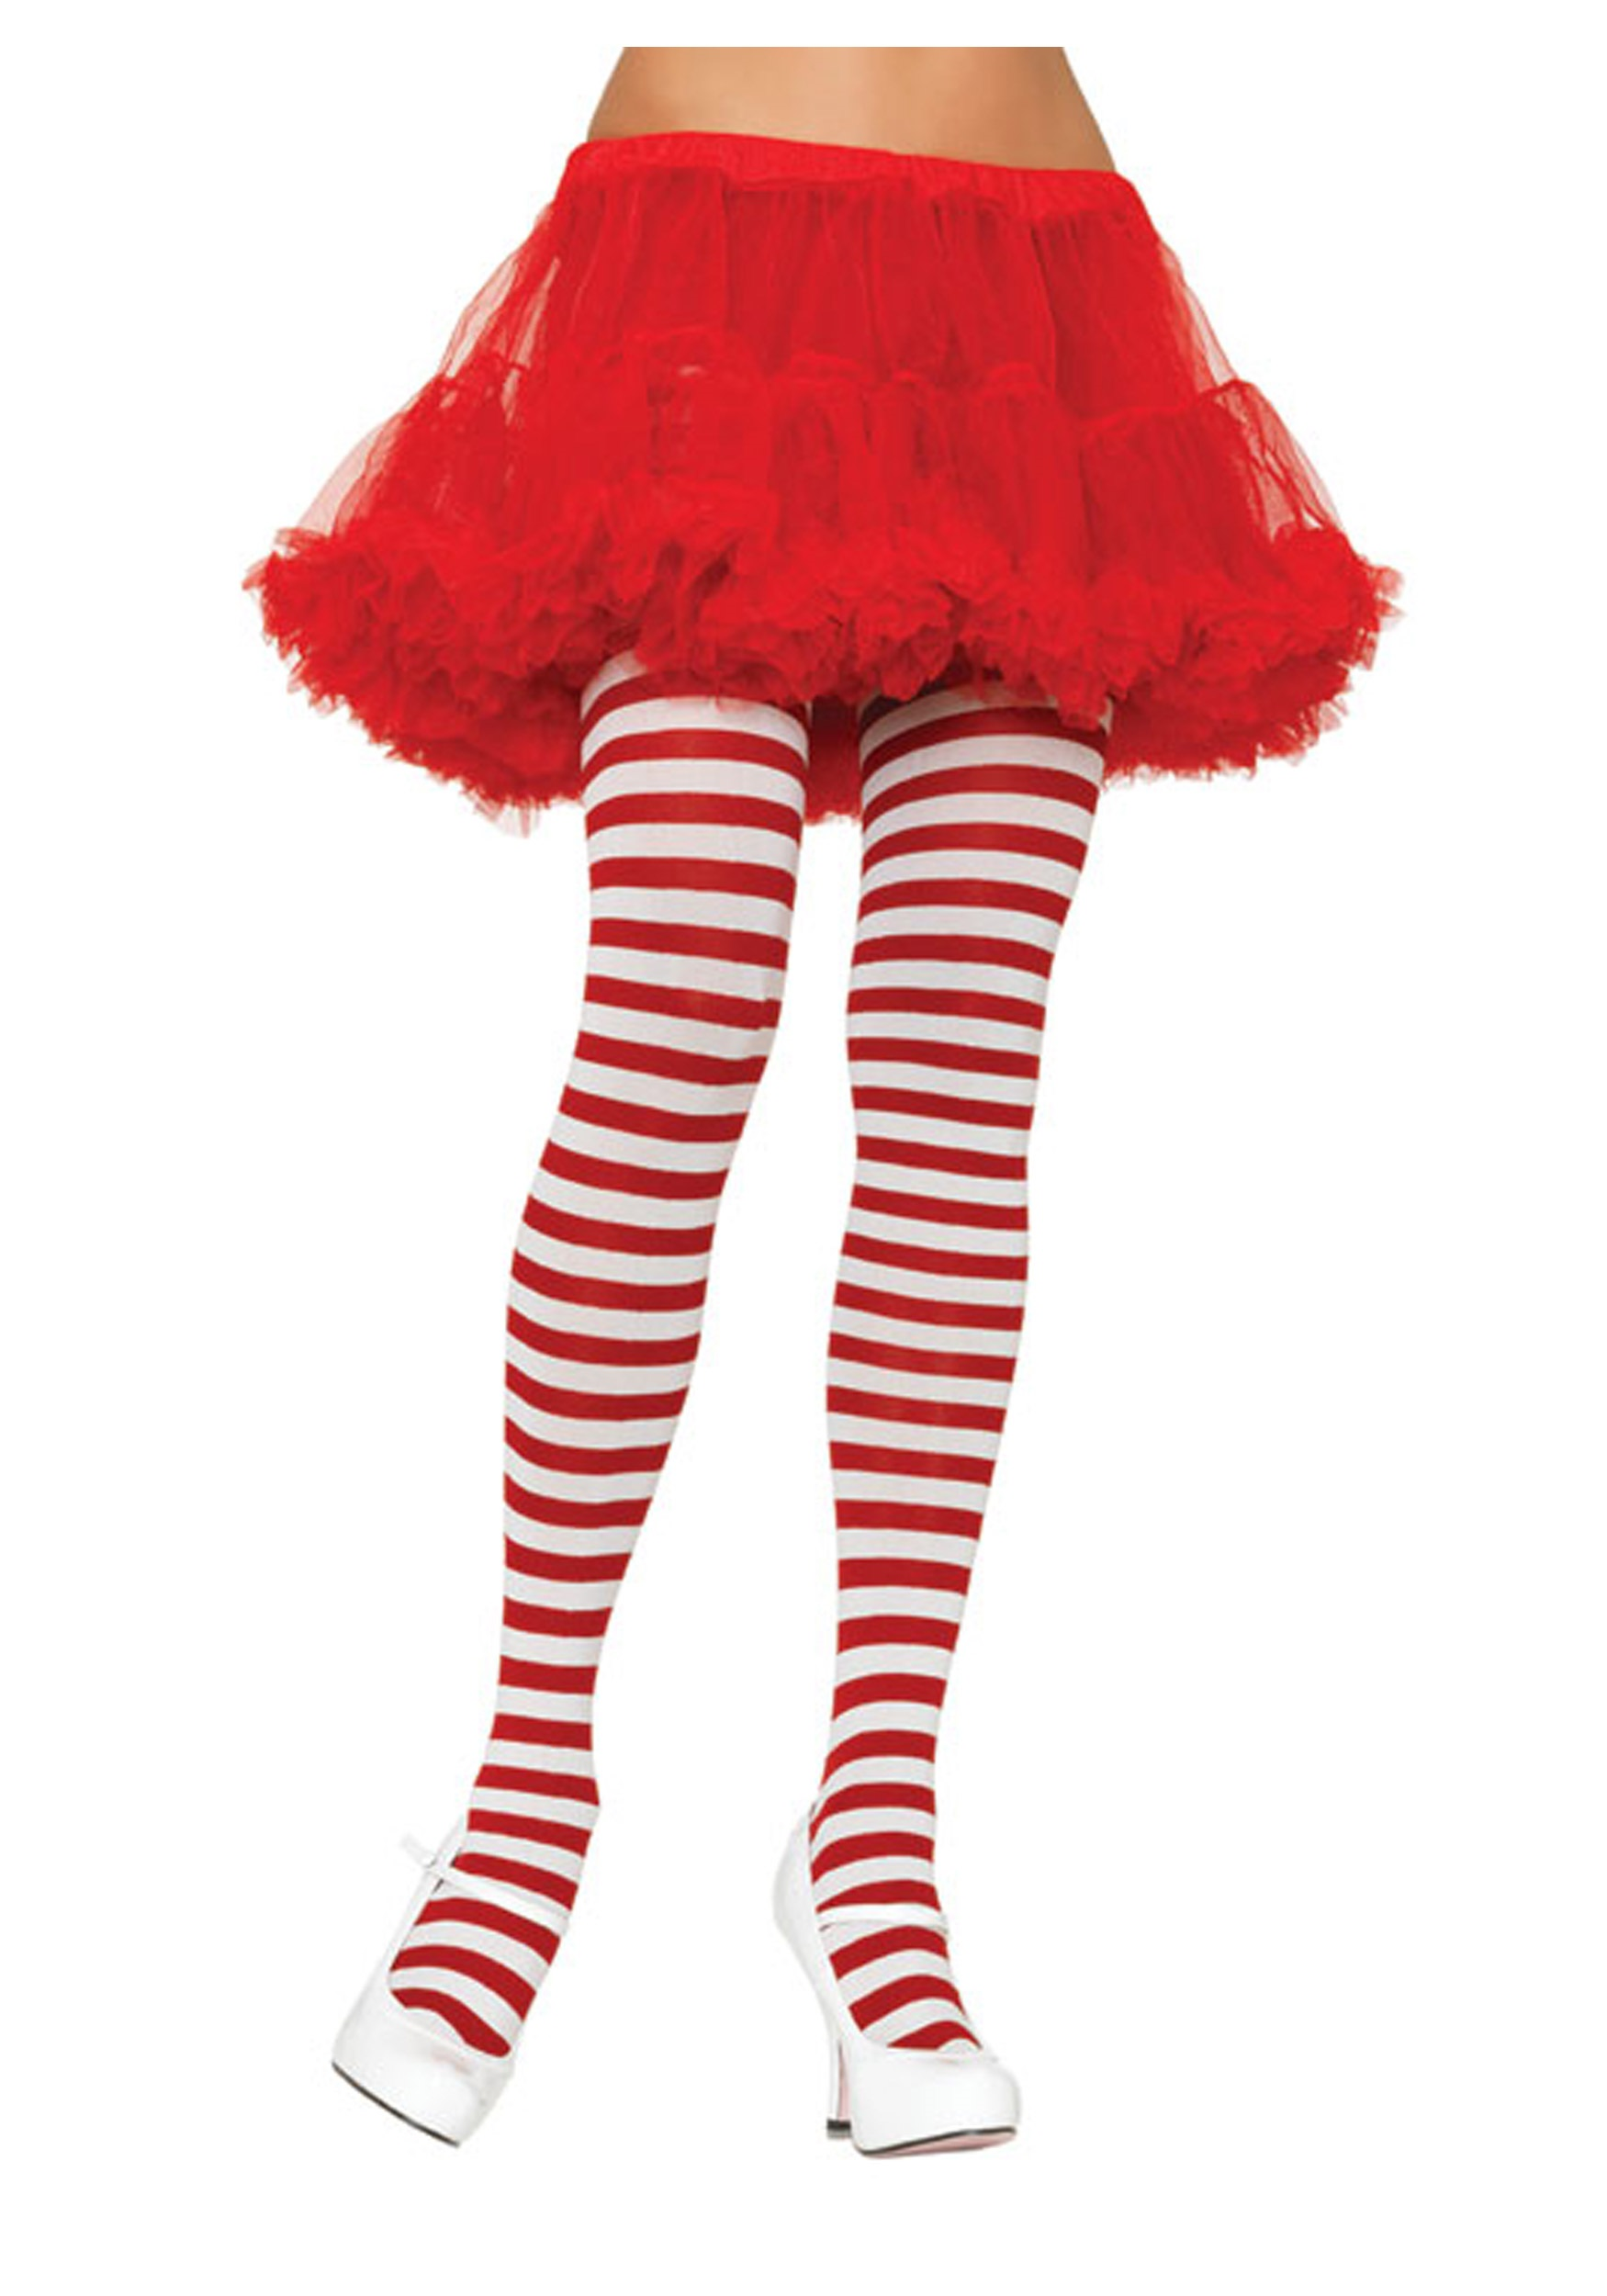 098fcd95c93 plus-size-white--red-striped-tights.jpg